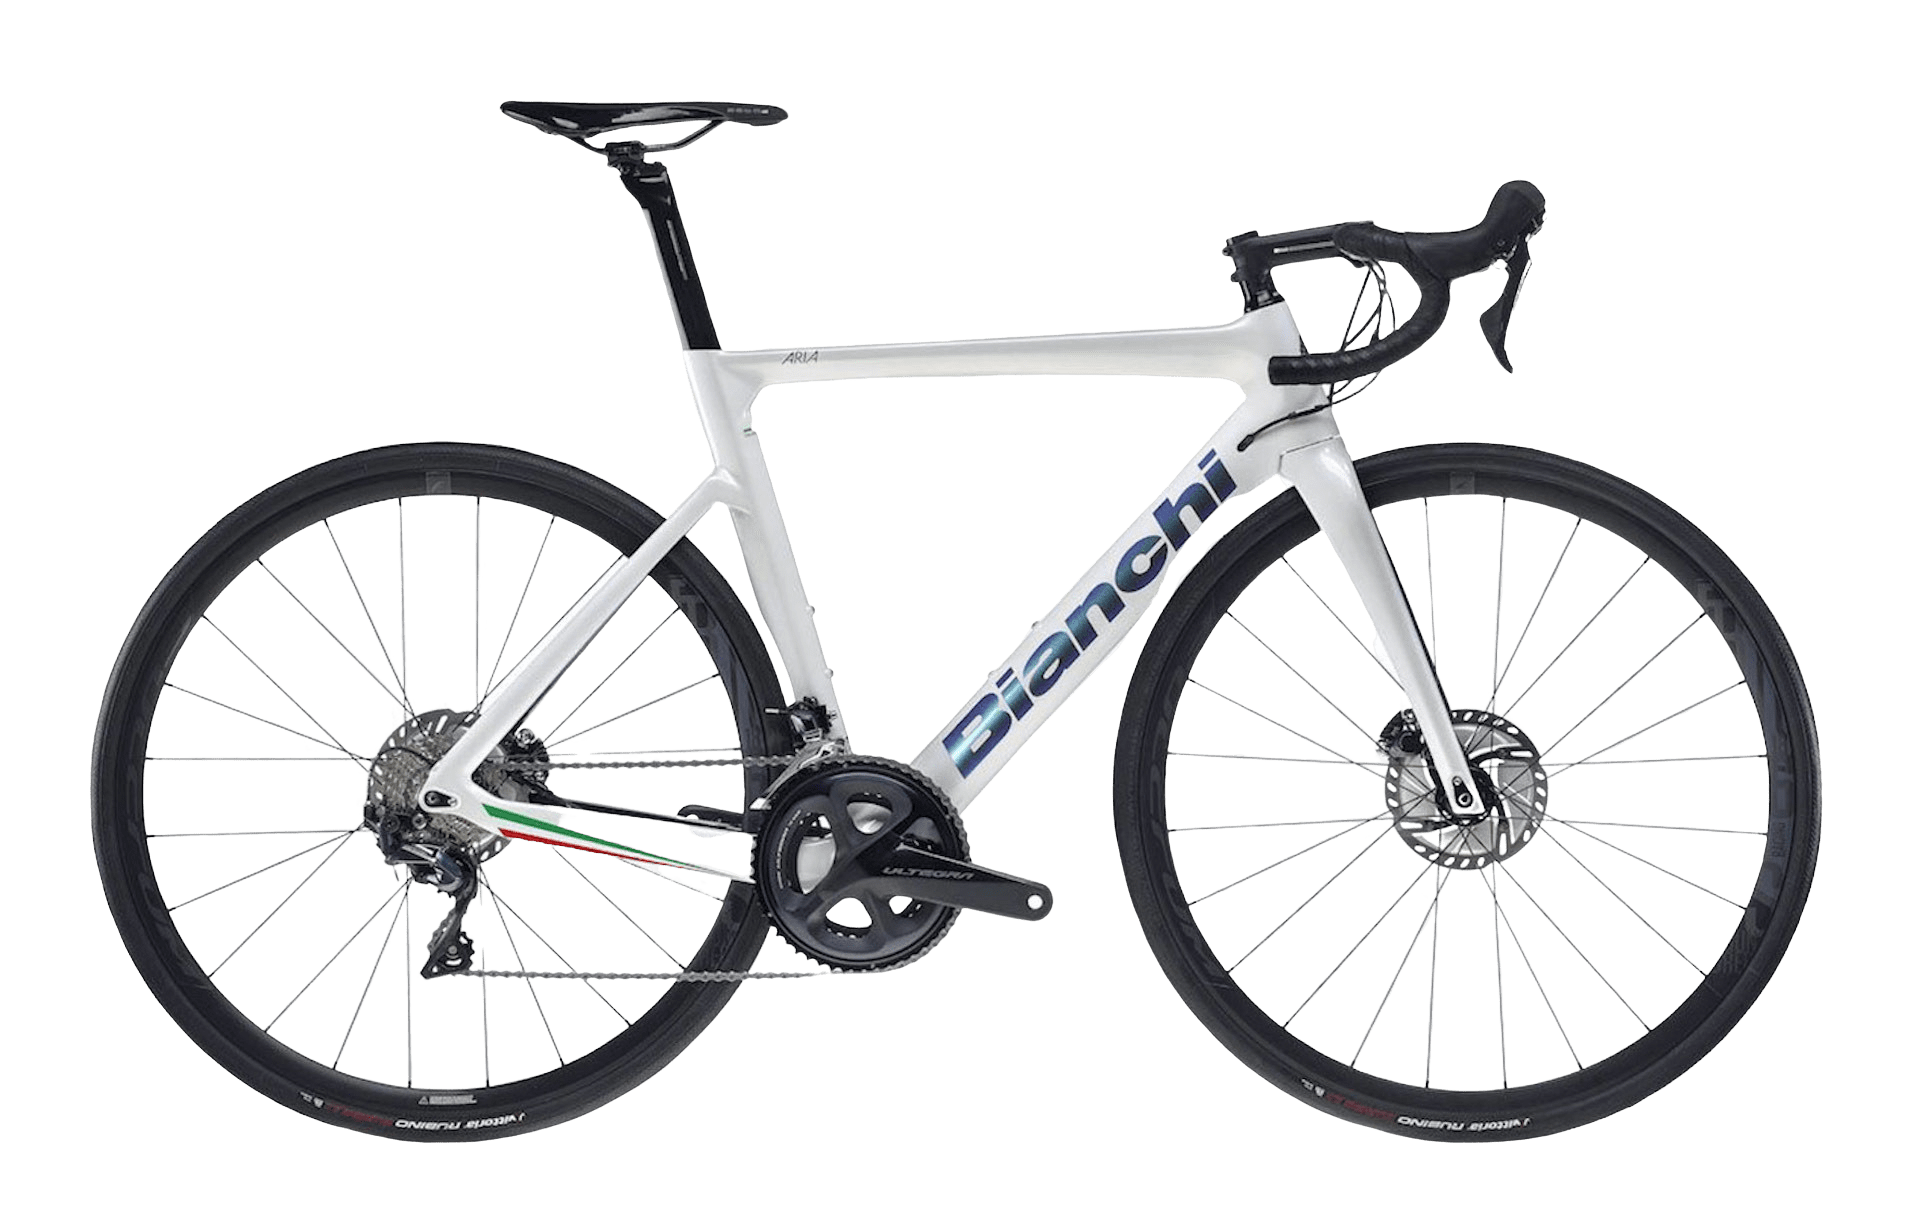 bianchi-aria-bianco-limited-edition -racefiets